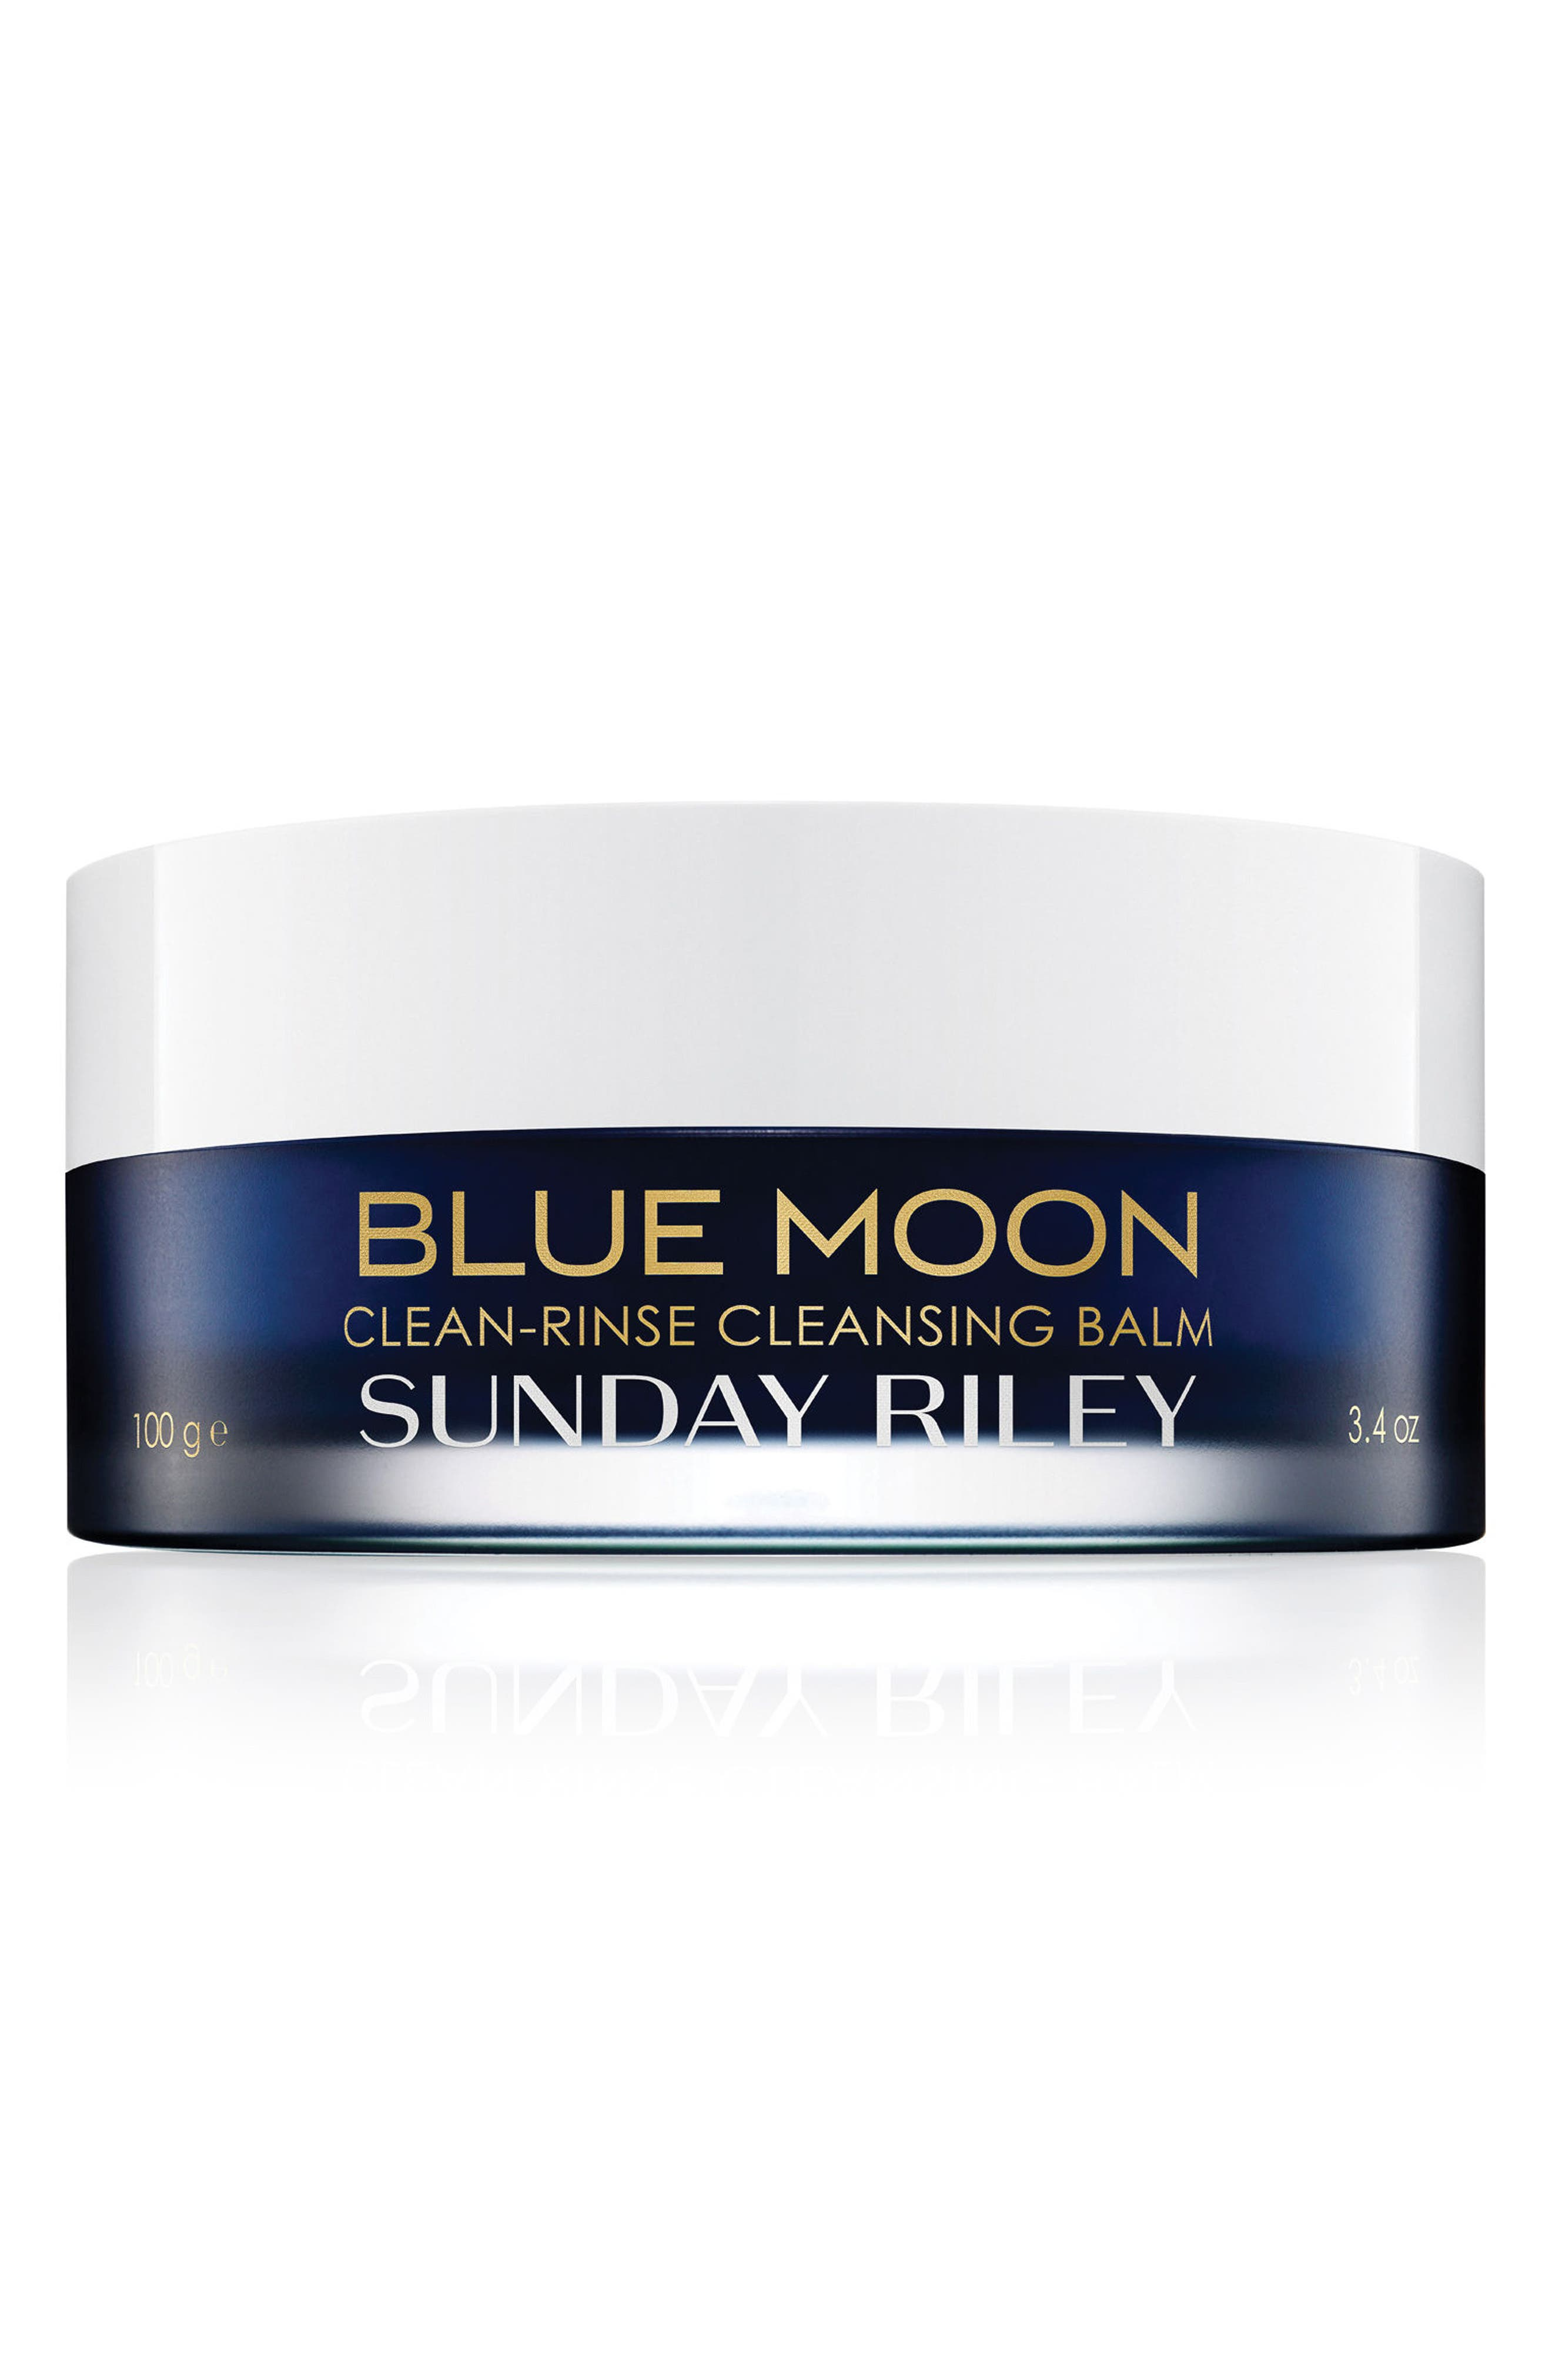 SUNDAY RILEY,                             SPACE.NK.apothecary Sunday Riley Blue Moon Tranquility Cleansing Balm,                             Main thumbnail 1, color,                             NO COLOR